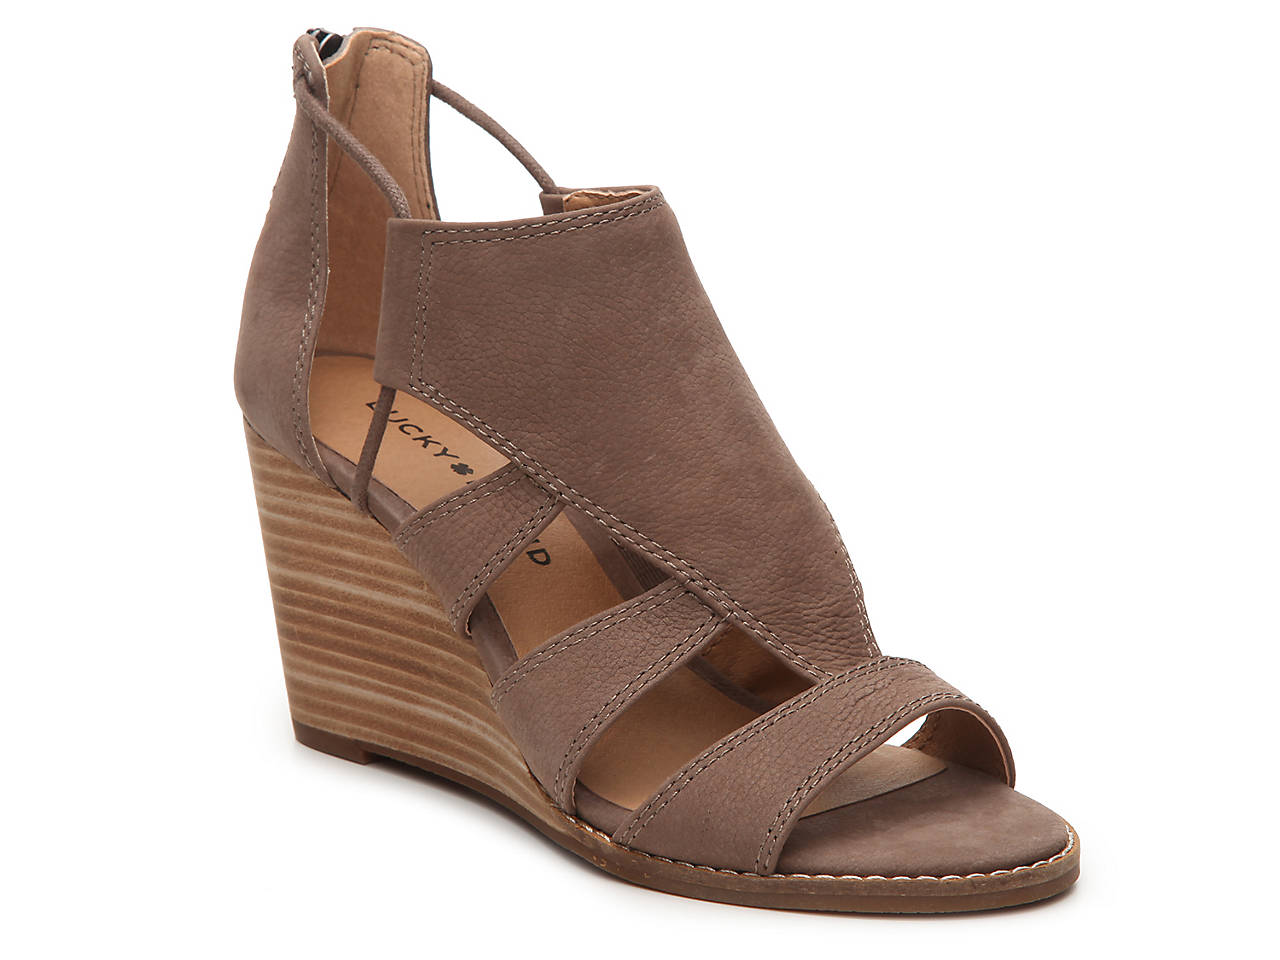 Lucky Brand Joellen Wedge Sandal Womens Shoes Dsw Tendencies Sandals Footbed 2 Strap Brown 41